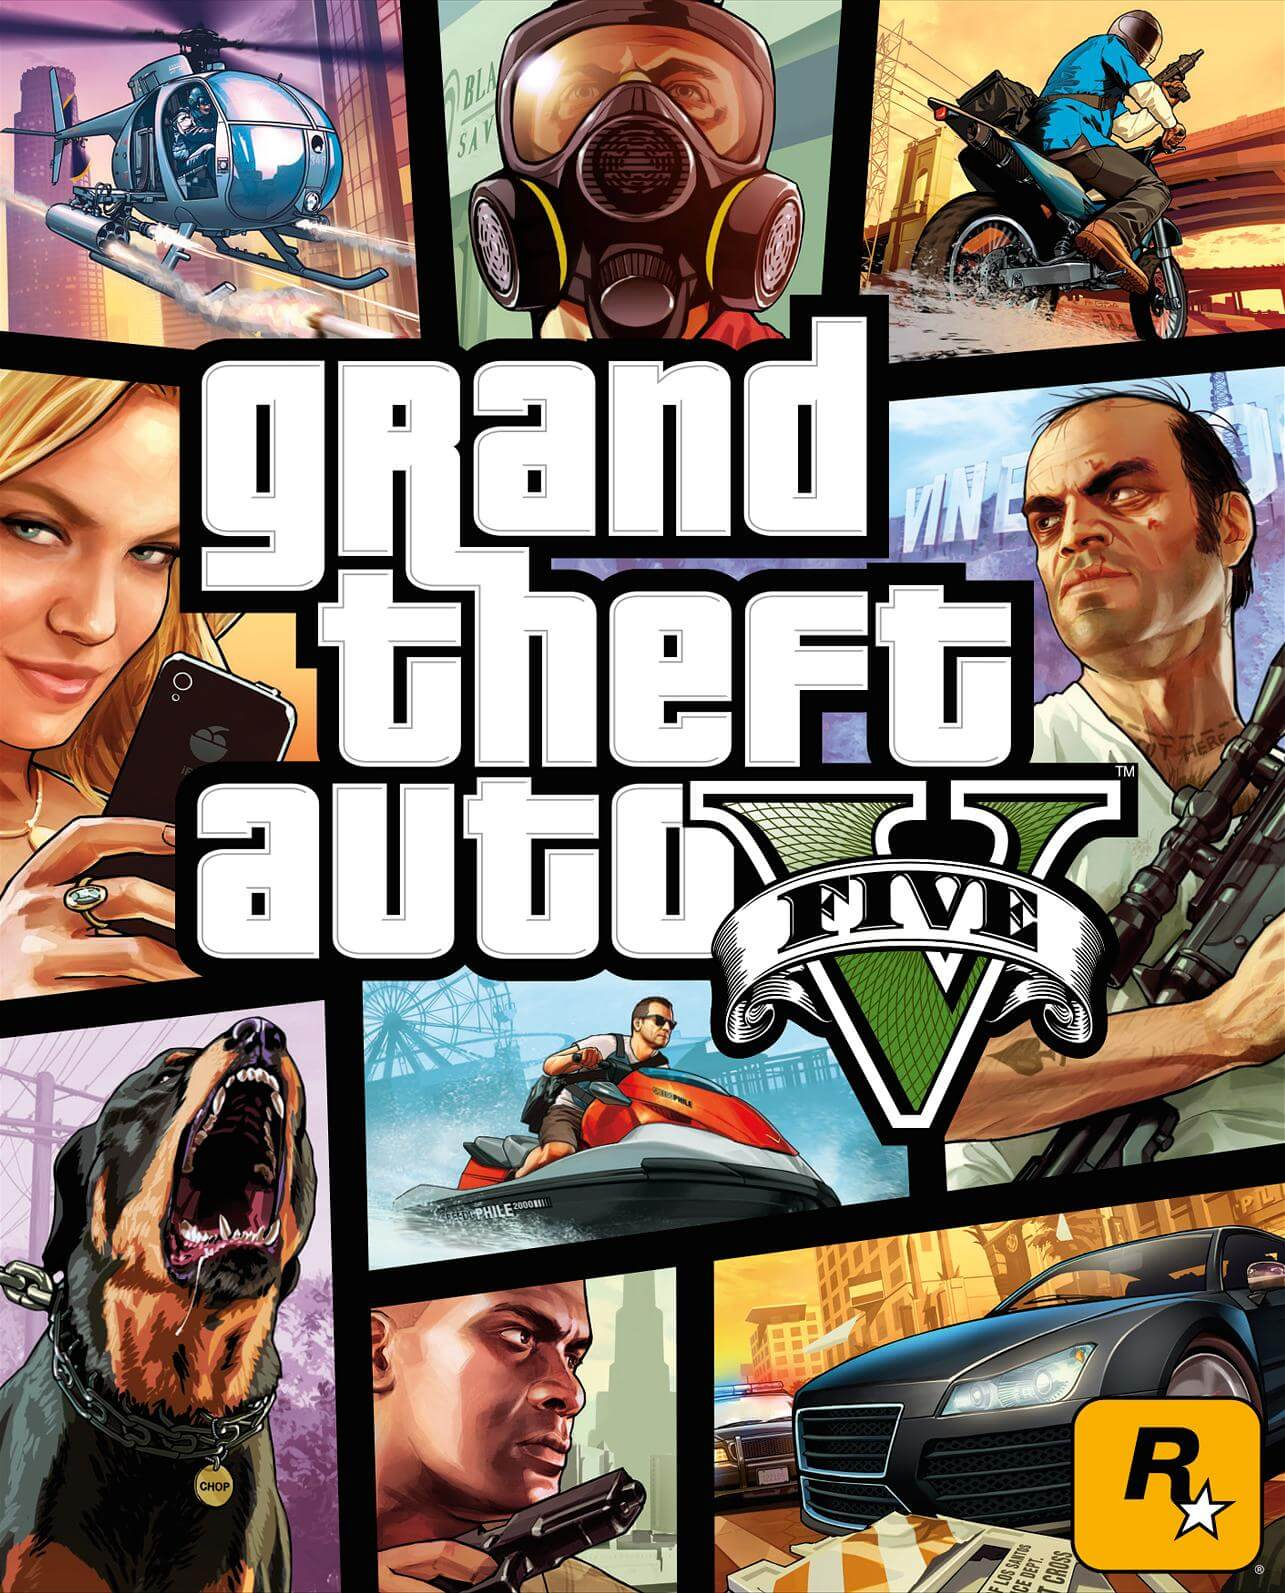 GTA 5 PC Download - Grand Theft Auto V Crack on PC - Crack2Games